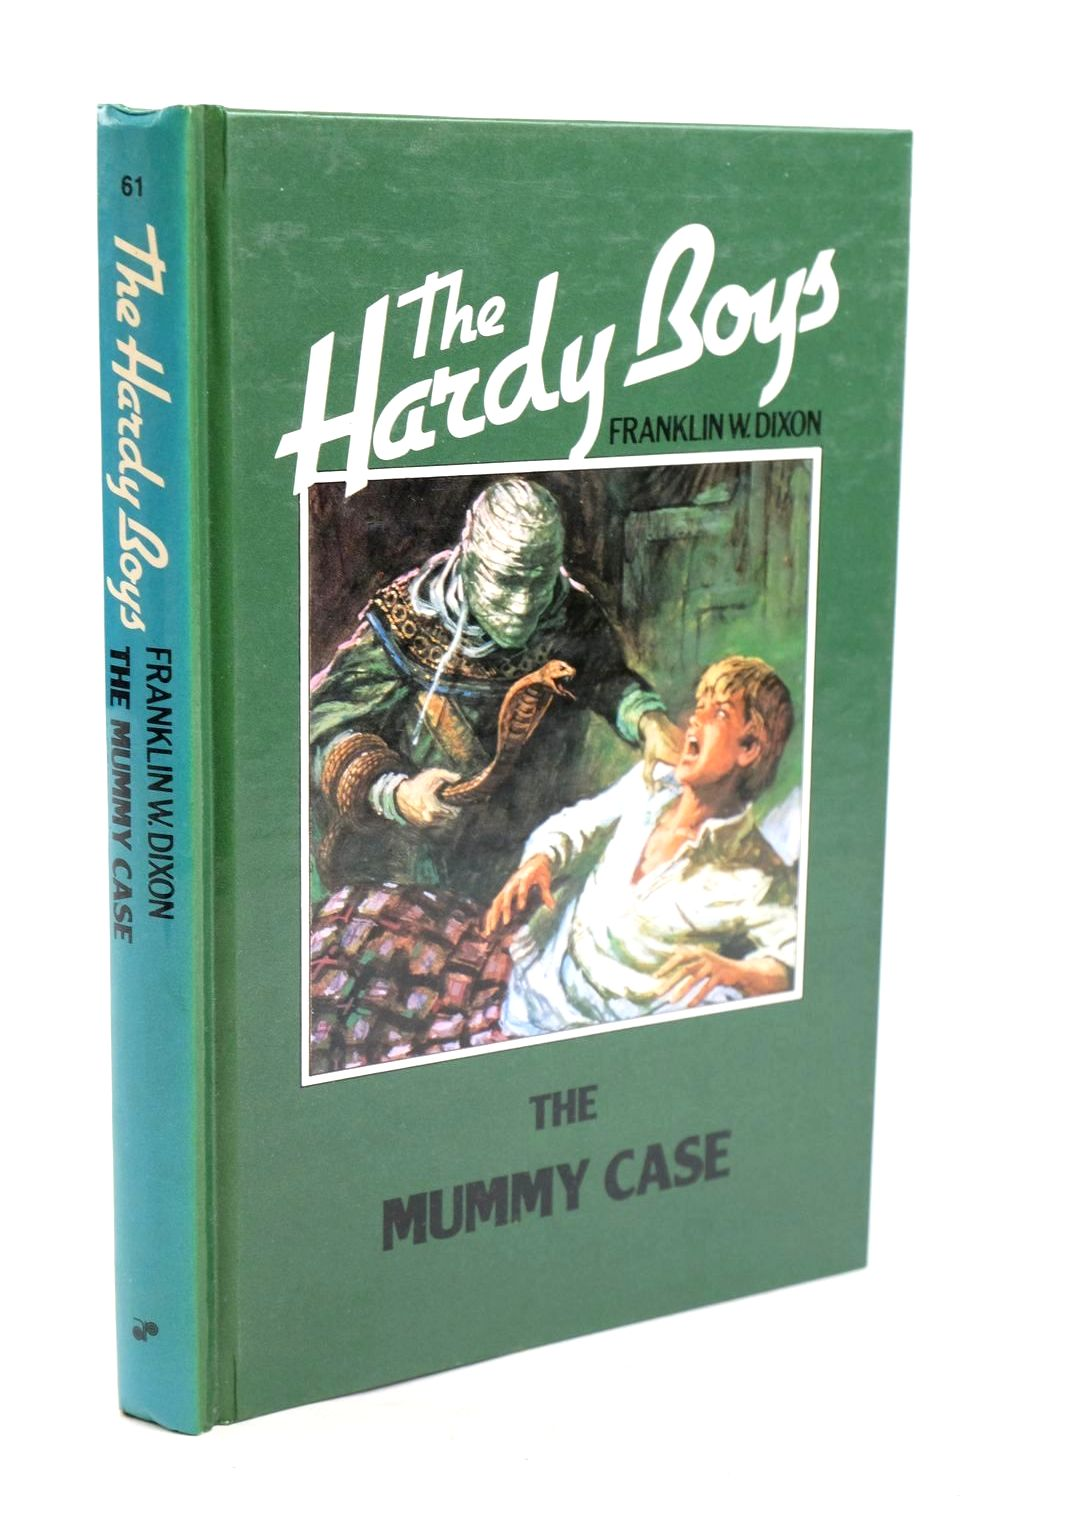 Photo of THE MUMMY CASE written by Dixon, Franklin W. illustrated by Morrill, Leslie published by Angus & Robertson Publishers (STOCK CODE: 1319539)  for sale by Stella & Rose's Books